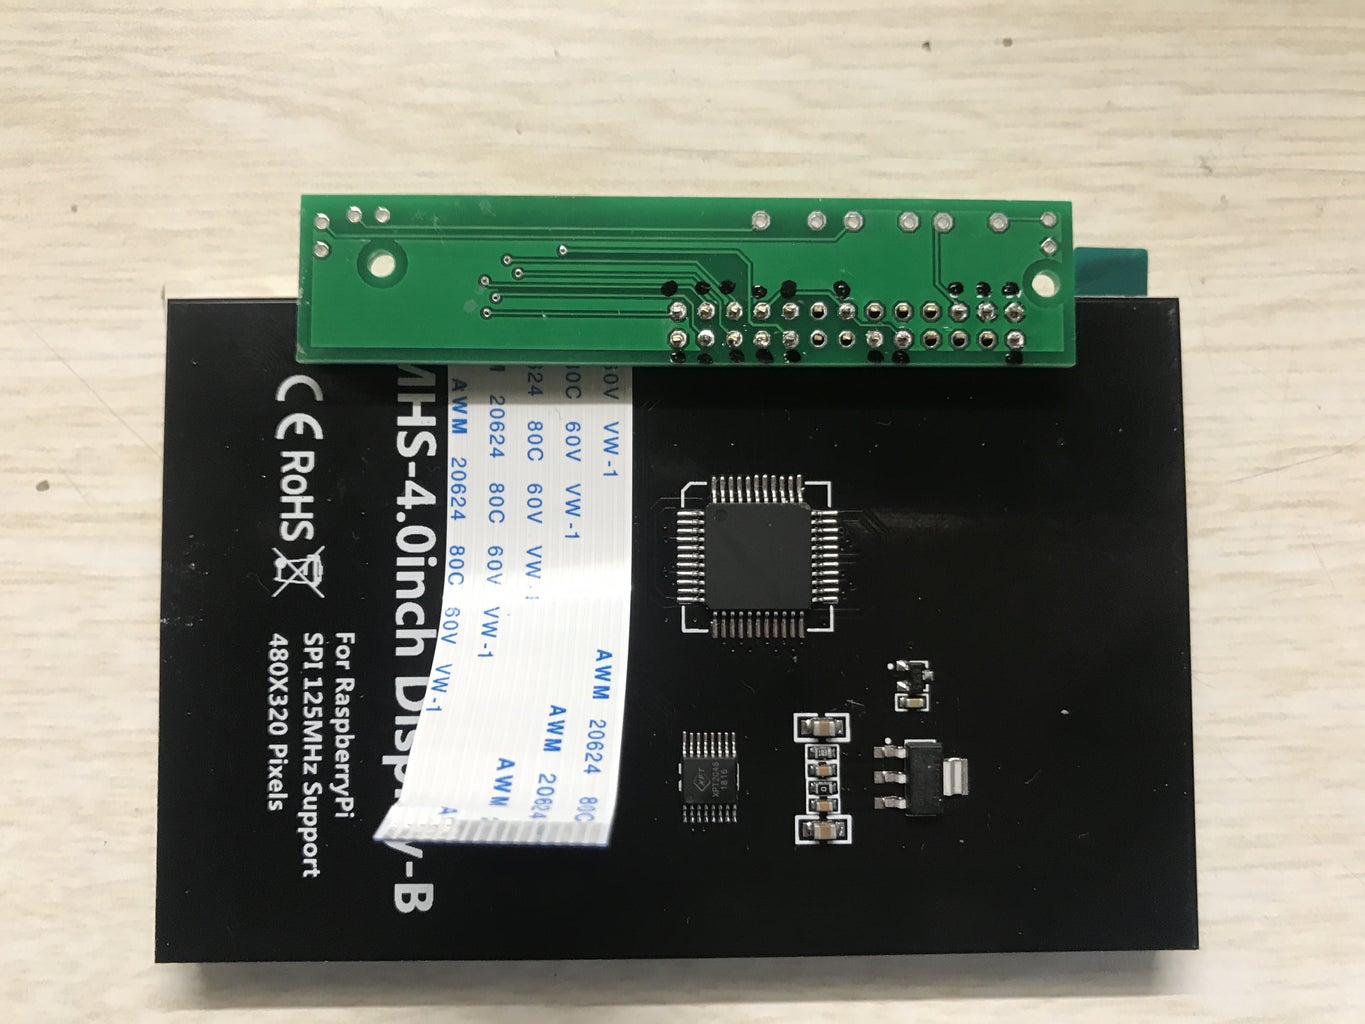 Solder the Ardiuno Pro Micro and Buttons and FPC Connector